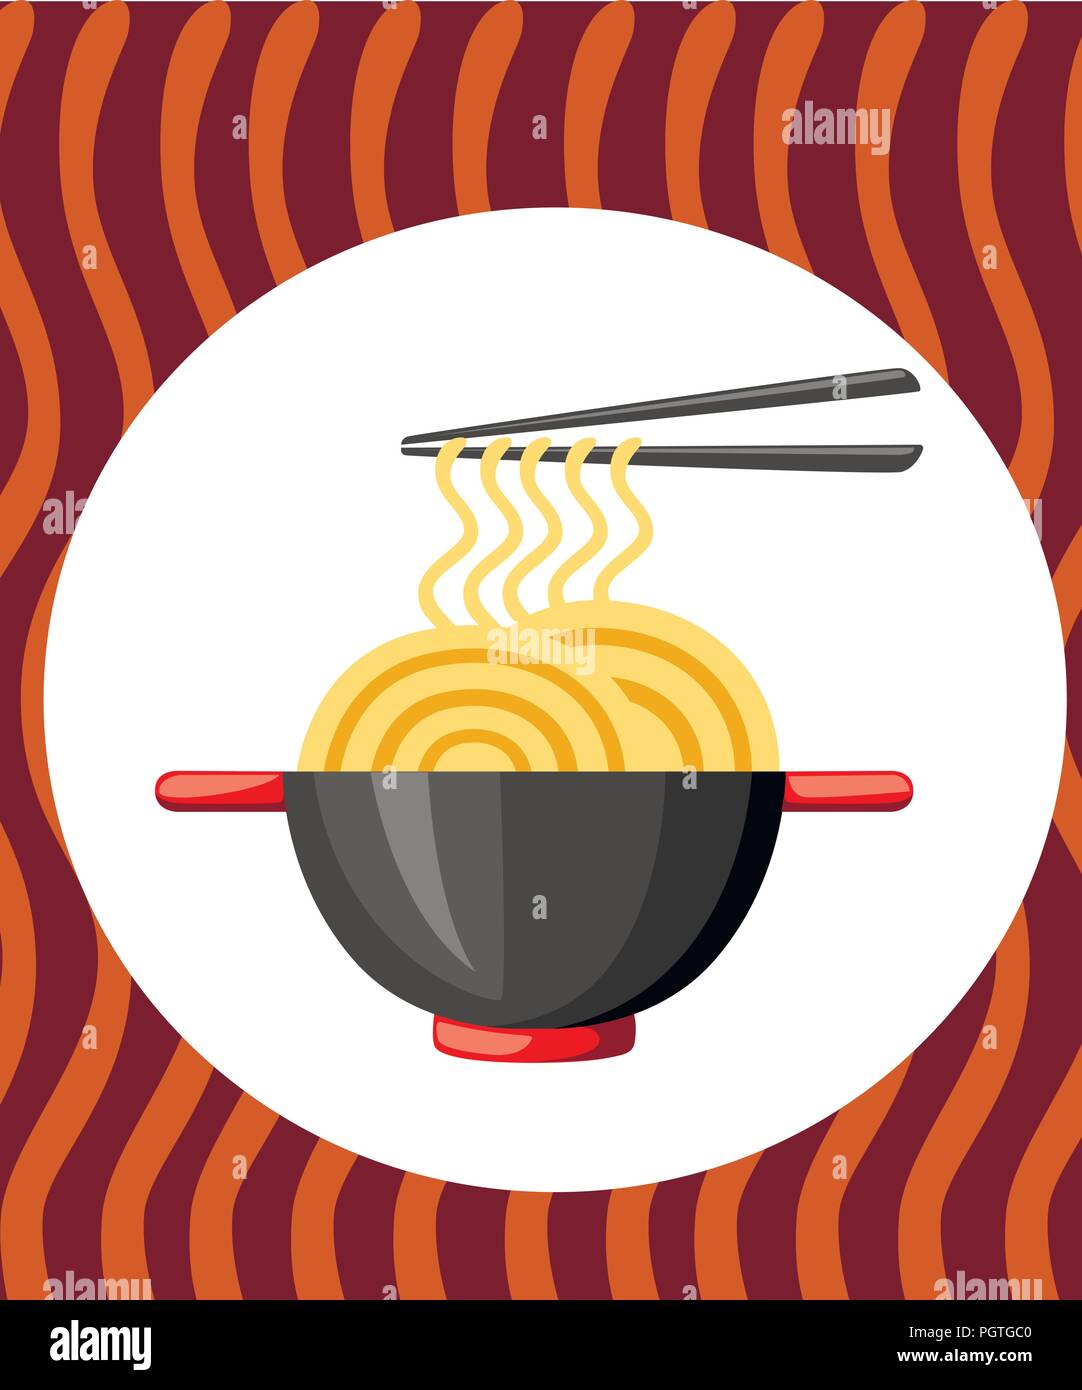 Black bowl with noodles and chopstick. Red handles. Flat vector illustration on textured background. Colorful icon for fast food restaurants. - Stock Vector